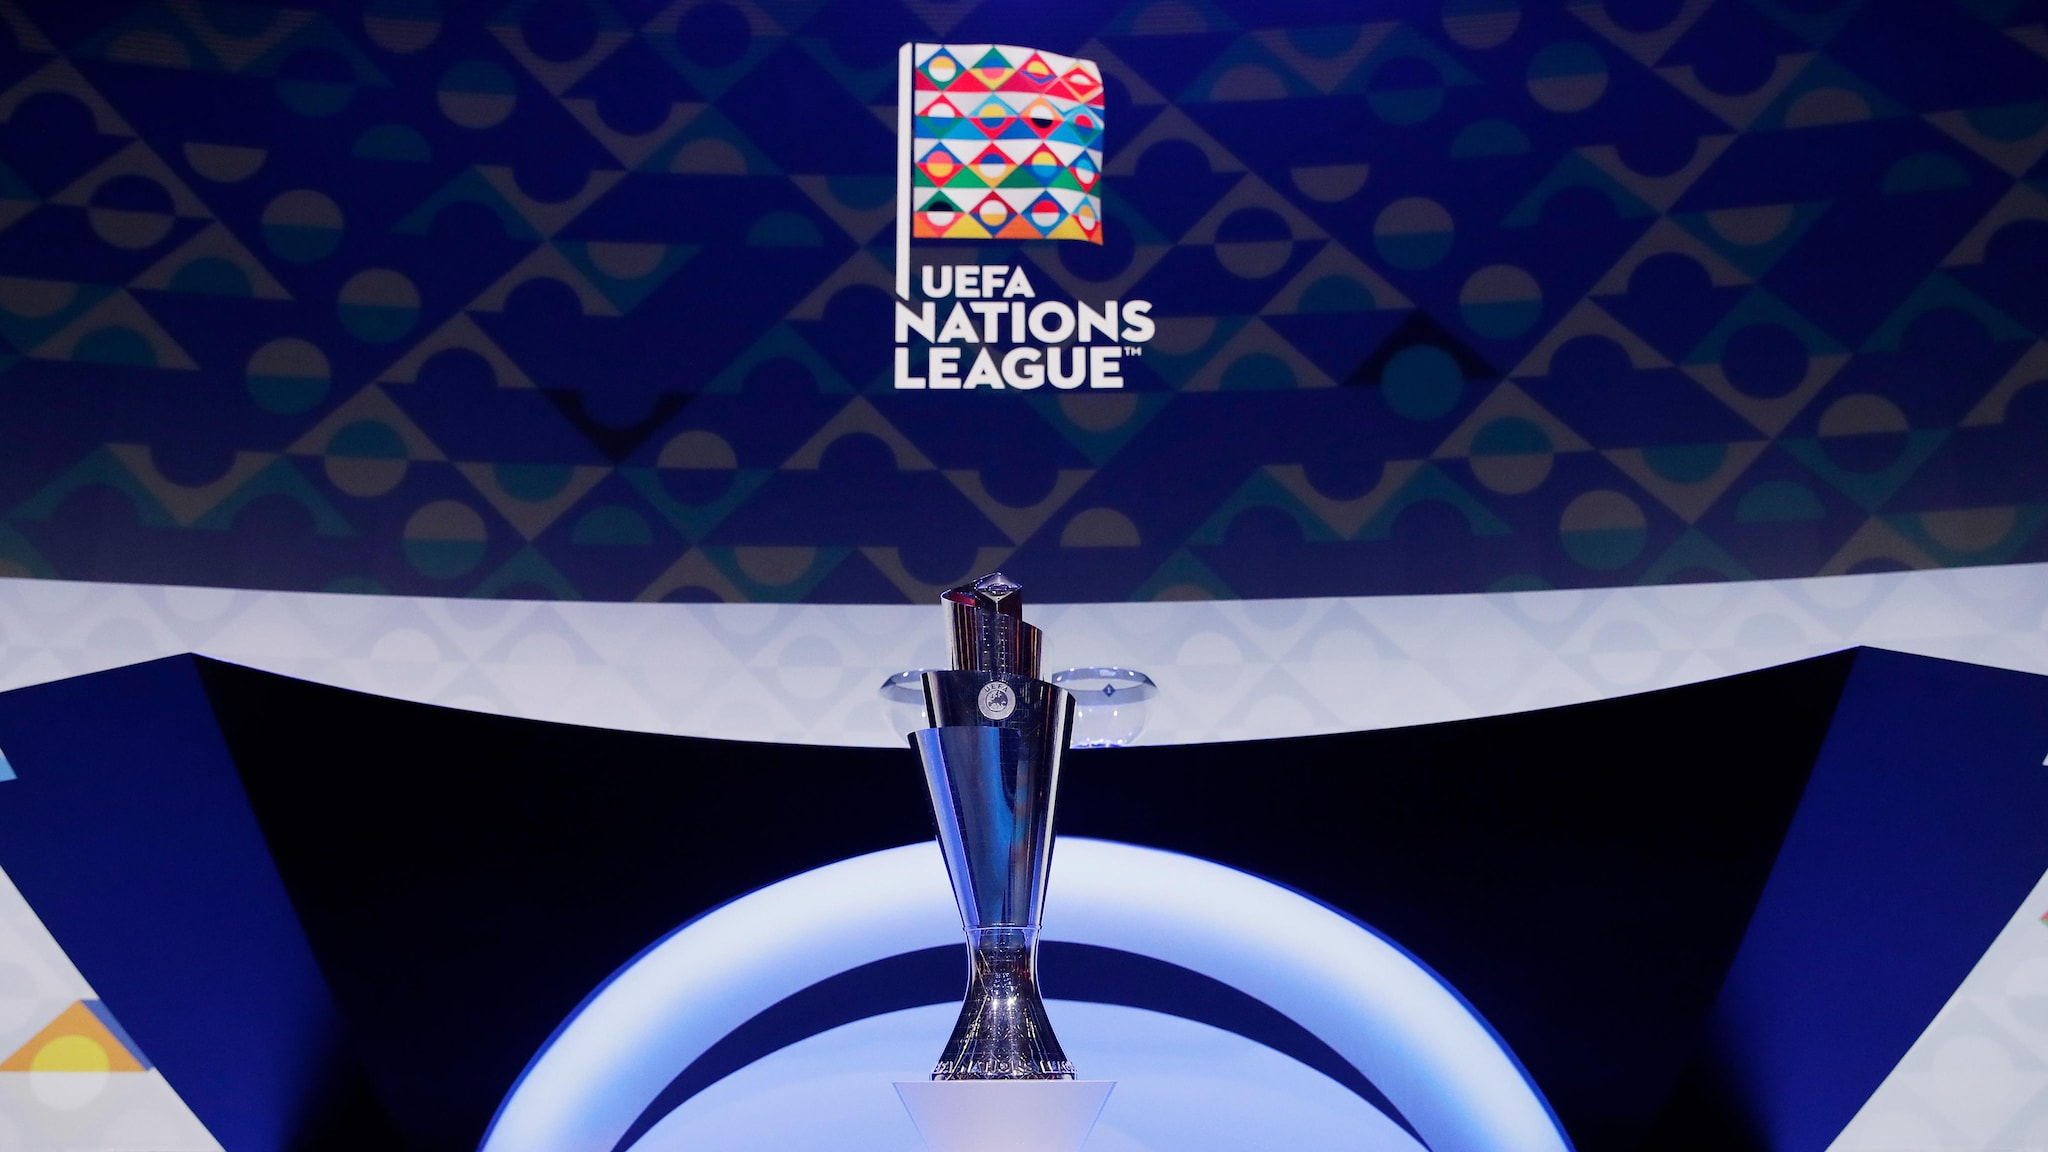 nations league group stage in september october and november uefa nations league uefa com nations league group stage in september